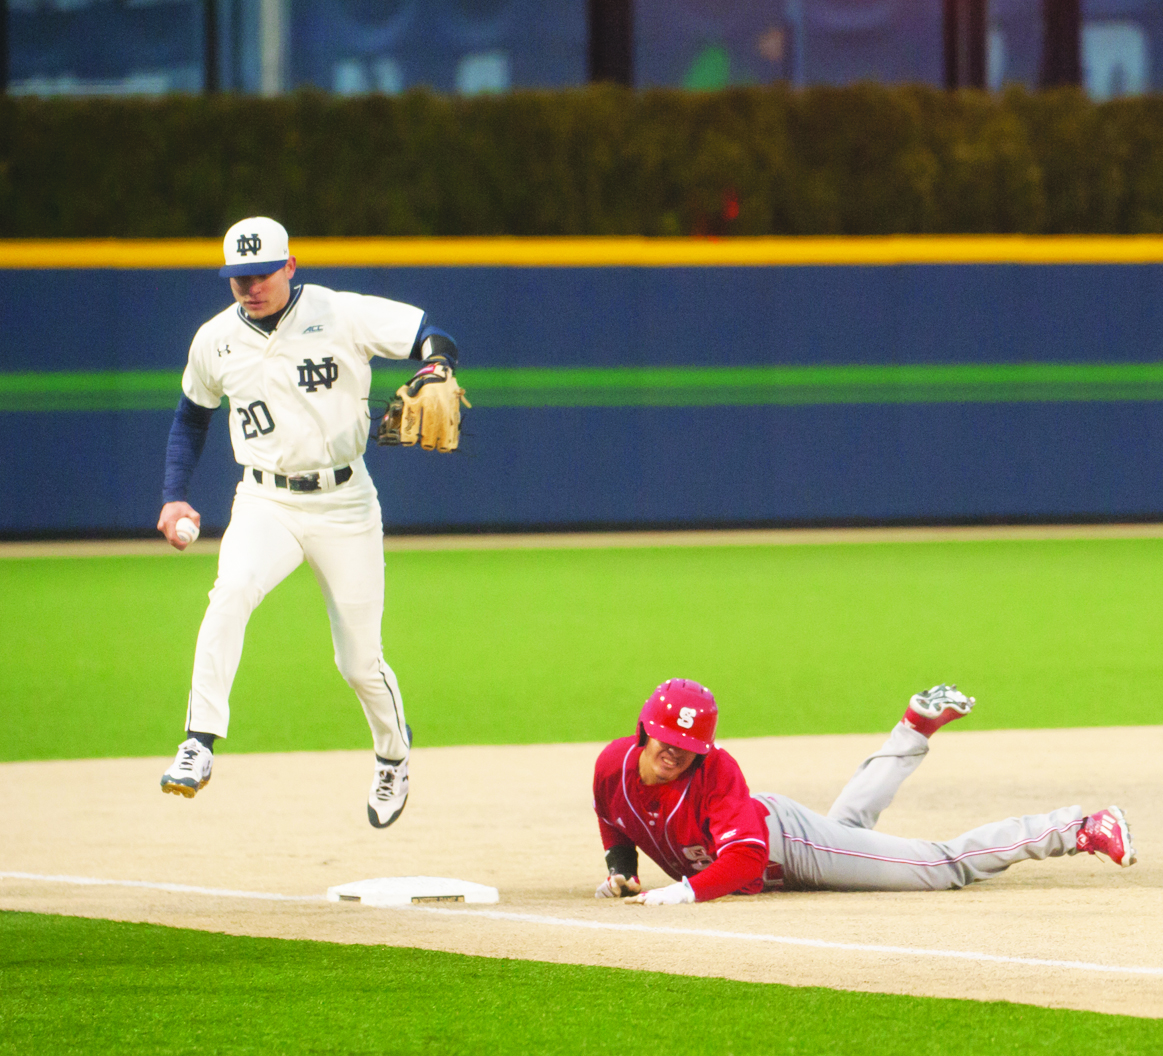 Irish senior third baseman Kyle Fiala tries to beat a runner to the base during Notre Dame's 4-1 win over N.C. State on March 31.